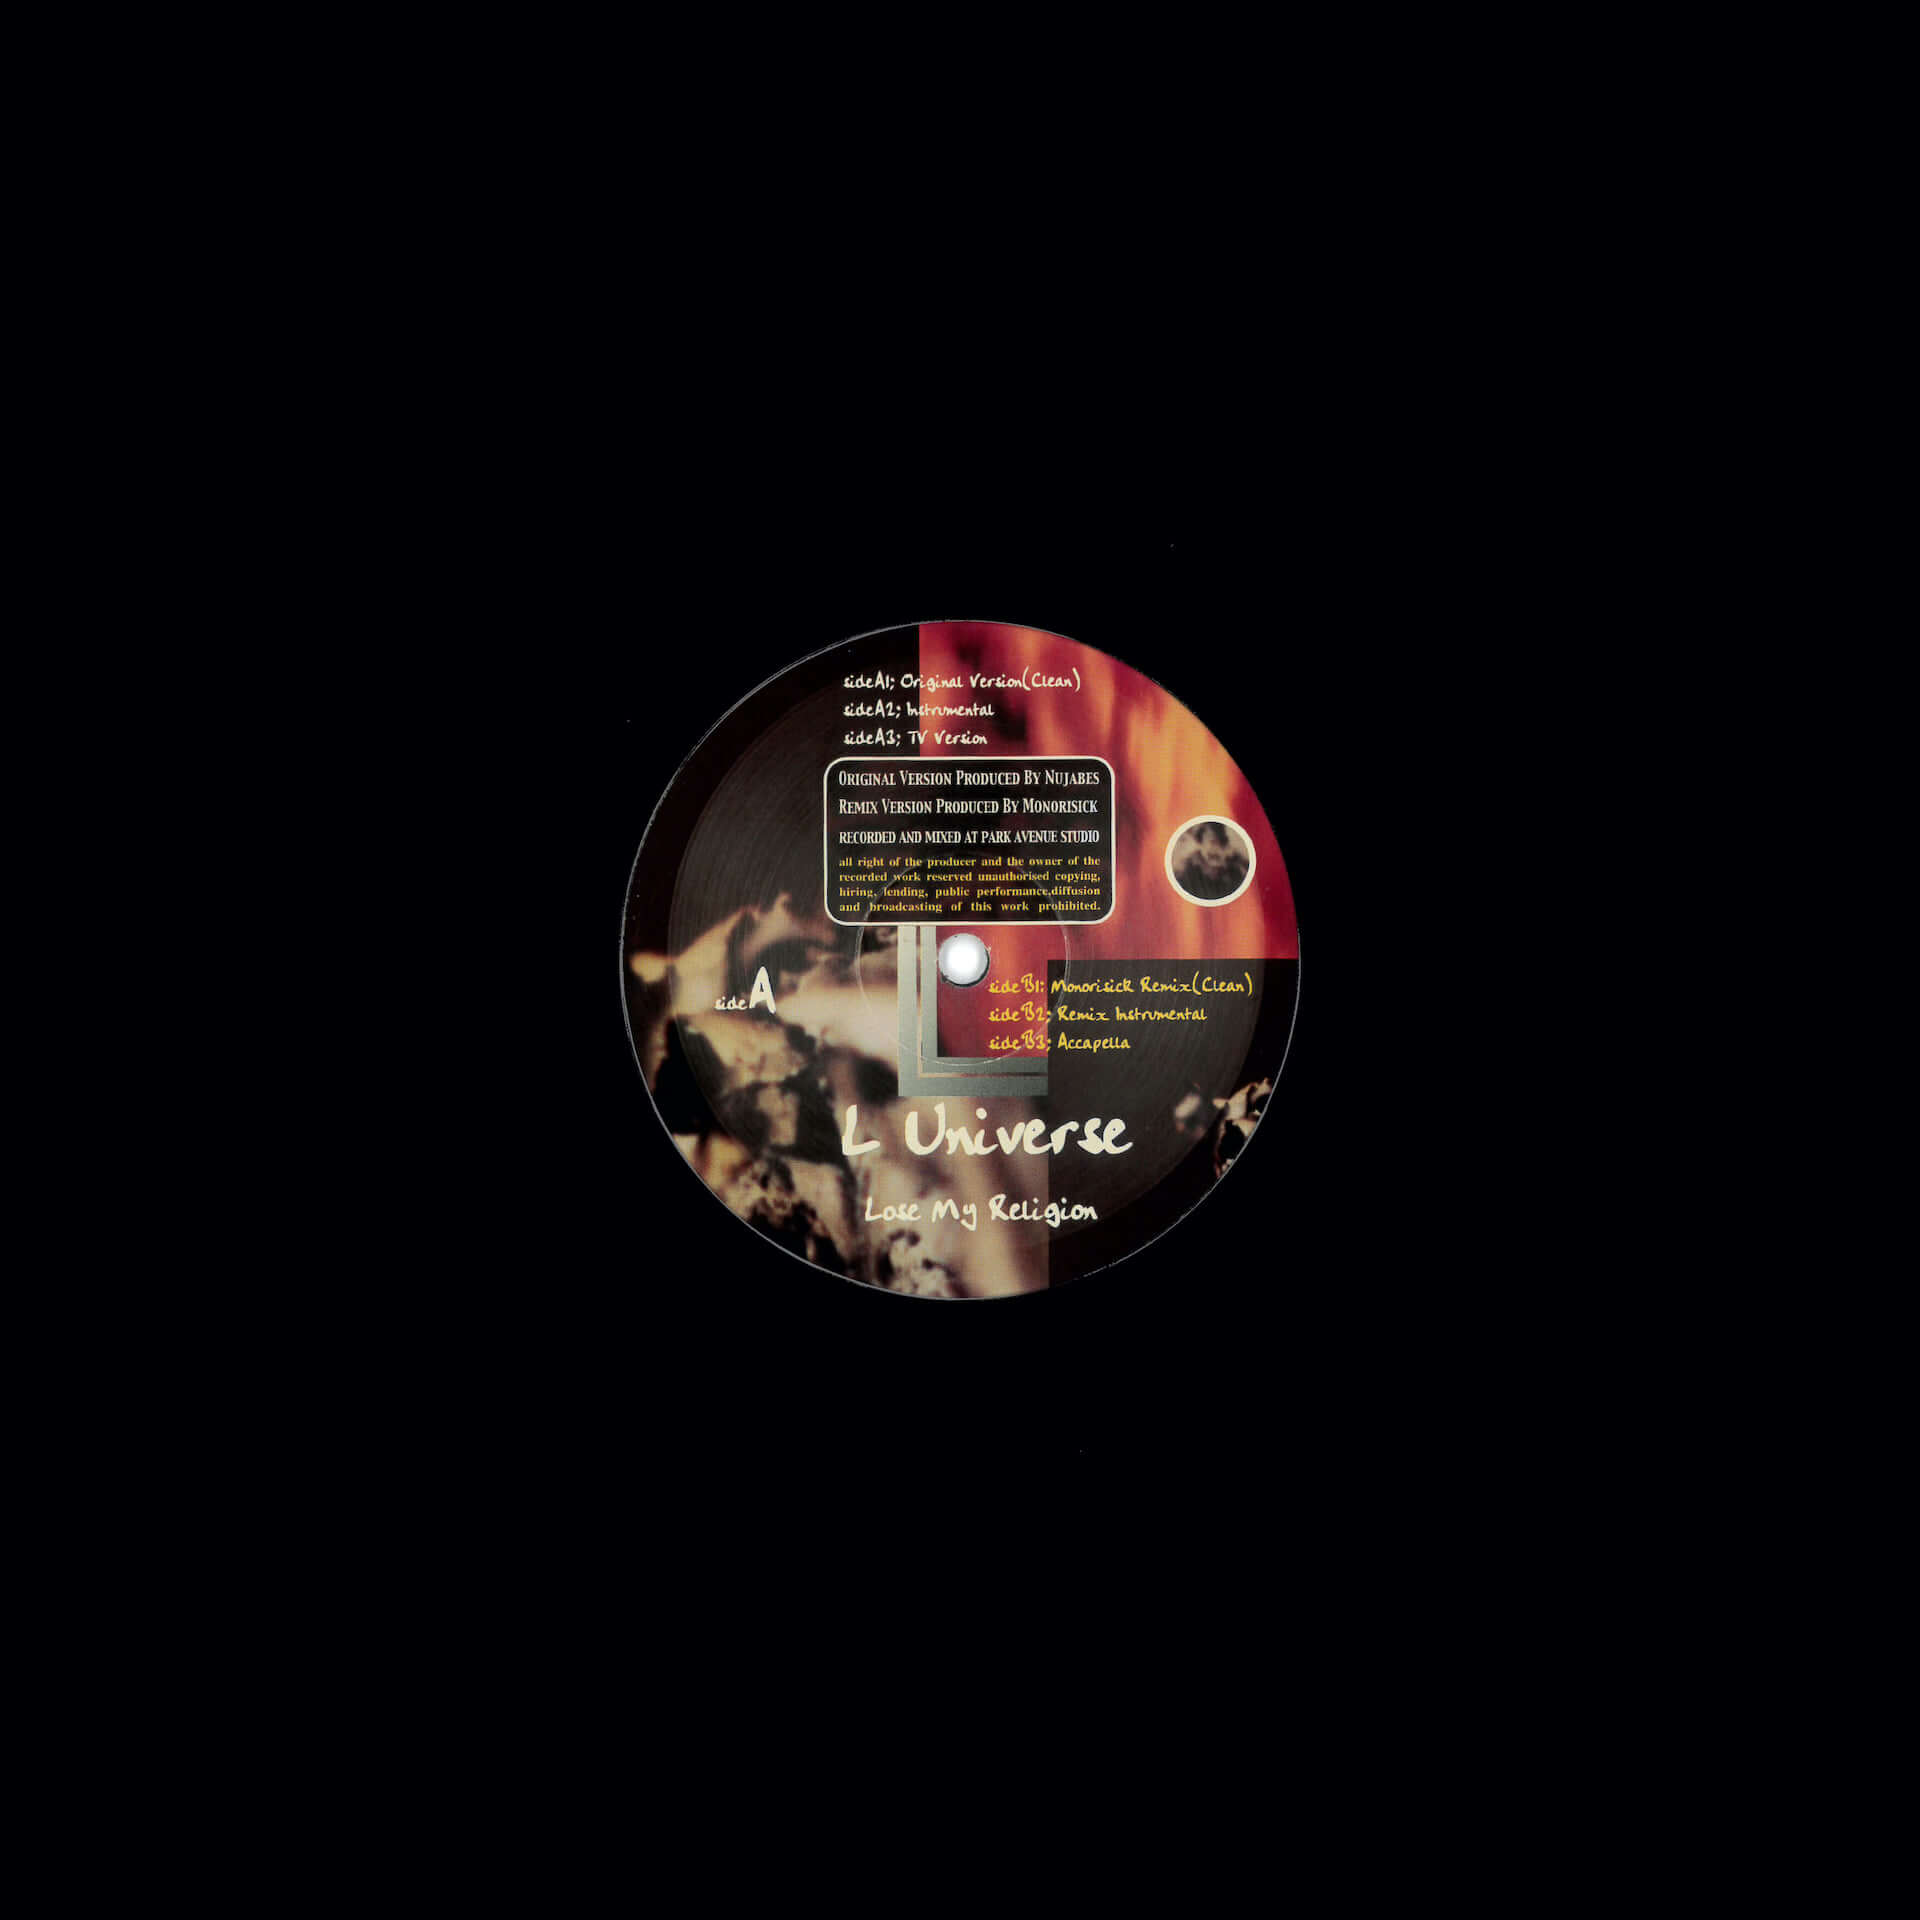 Nujabes没後から11年、〈Hydeout Productions〉のレコード音源がデジタルで解禁|初期作品2作が配信スタート music210226_nujabes_9-1920x1920